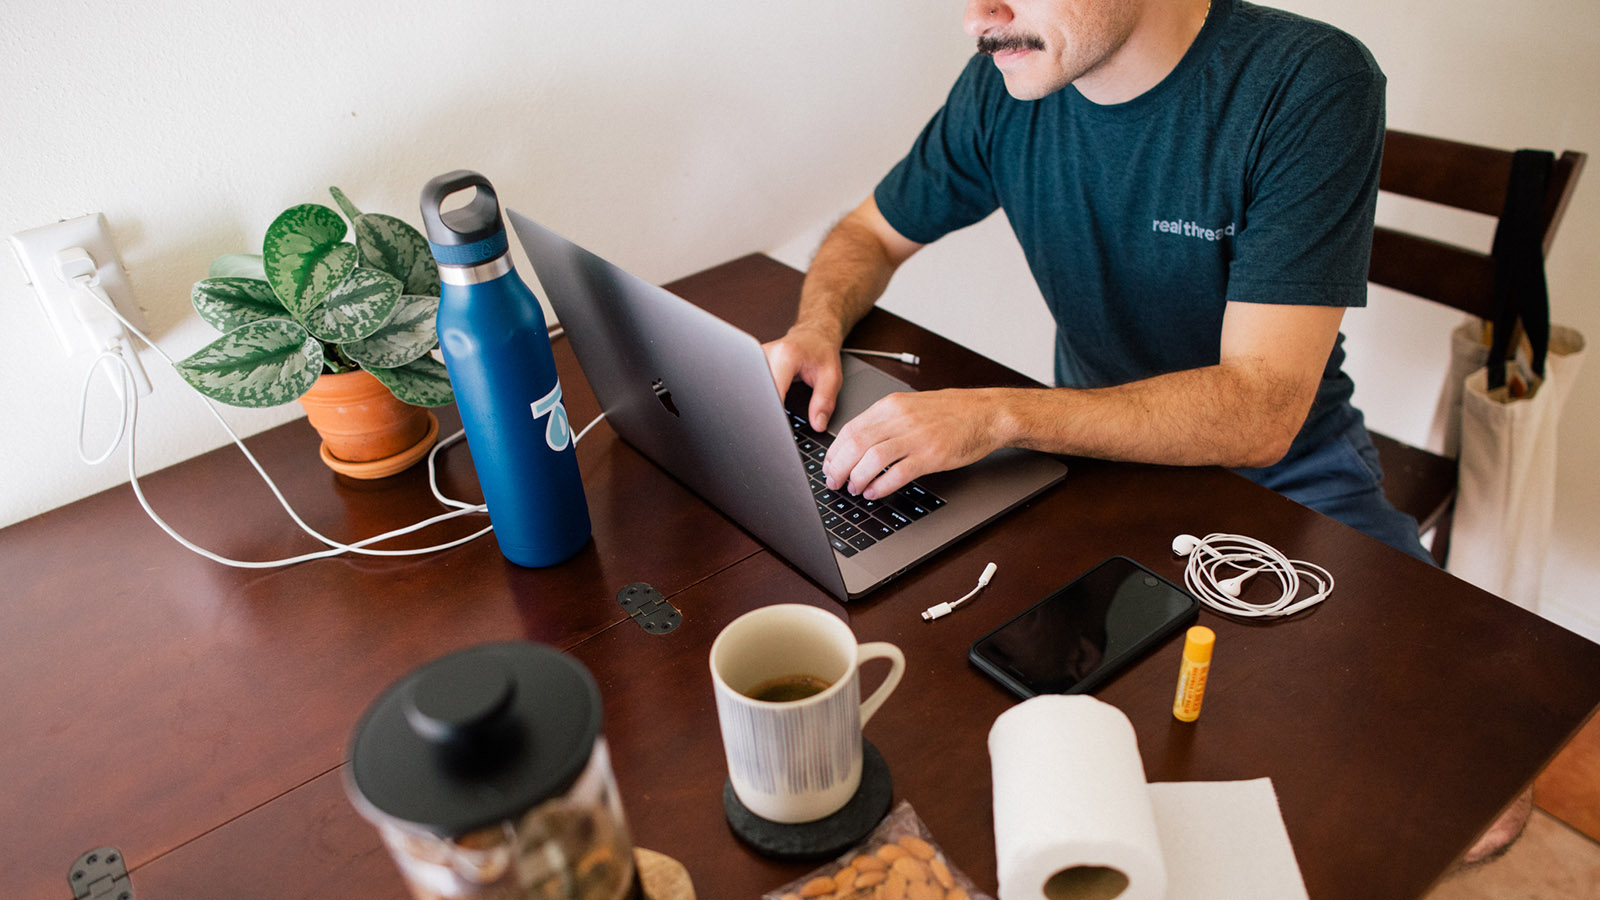 7 Work From Home Tips for Your Newly-Remote Team (From Some Pros)